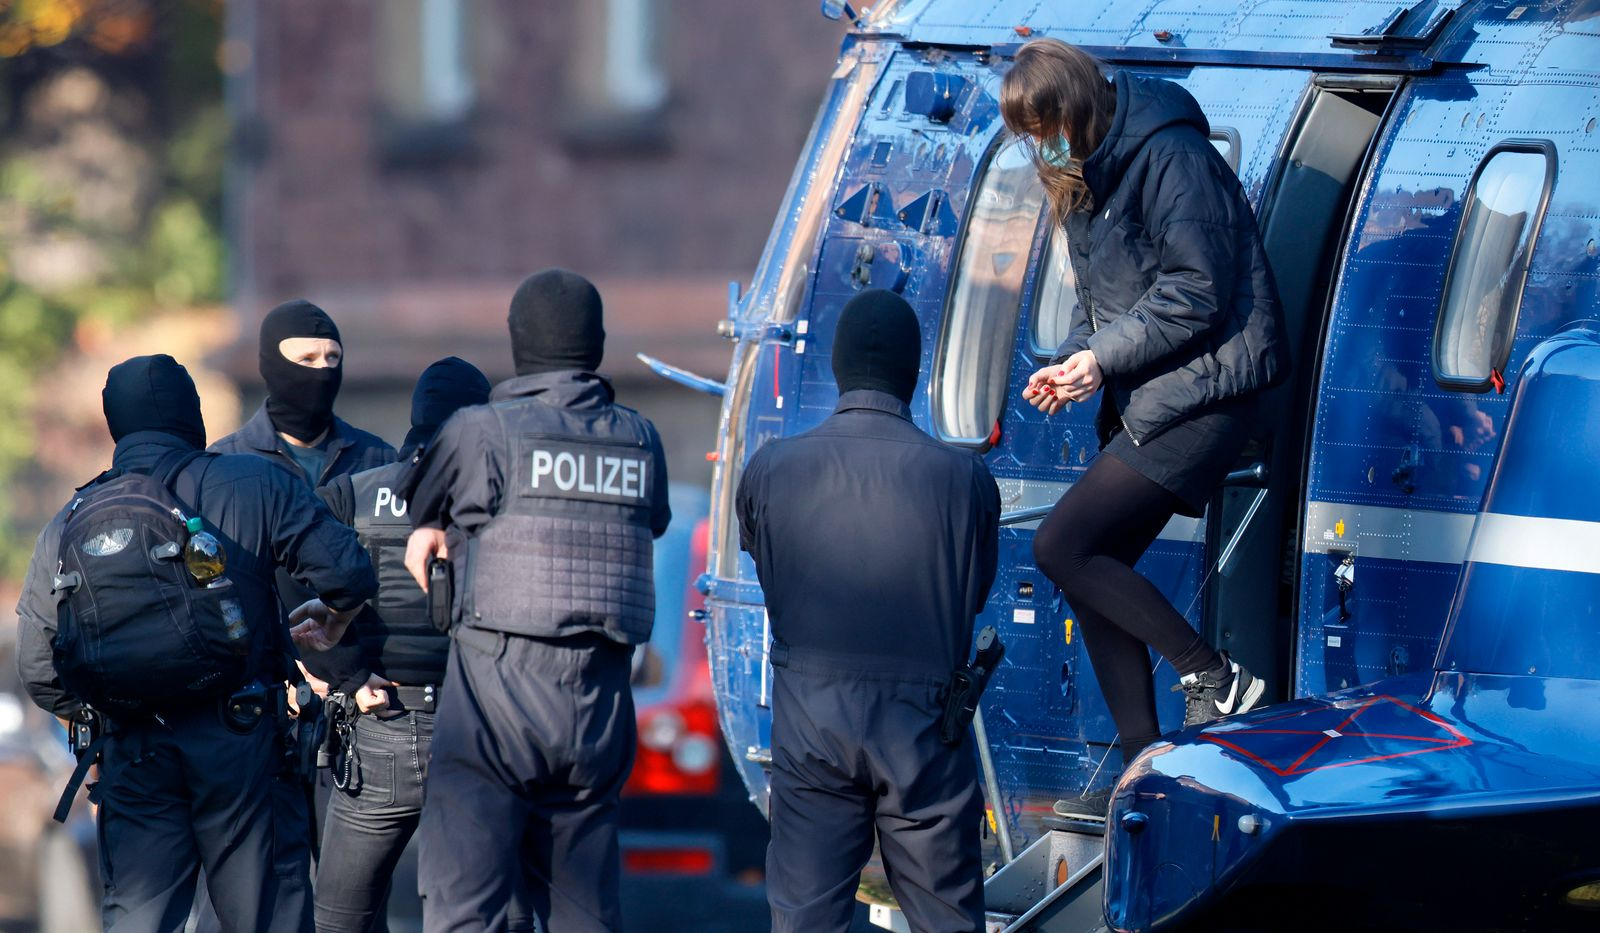 Arraignment of left wing suspect Lina E. at German Federal Prosecutor